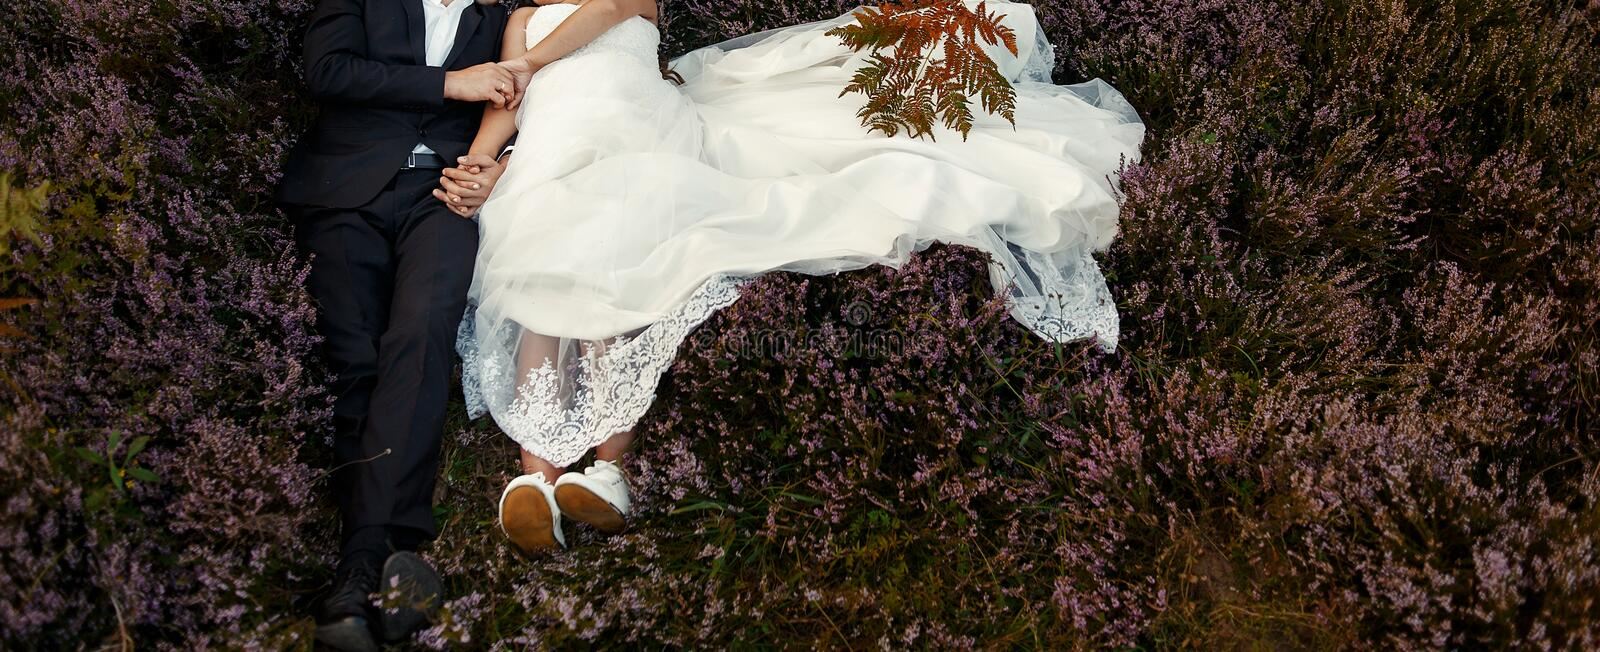 Gorgeous wedding couple embracing in sunlight lying in heather m royalty free stock photography